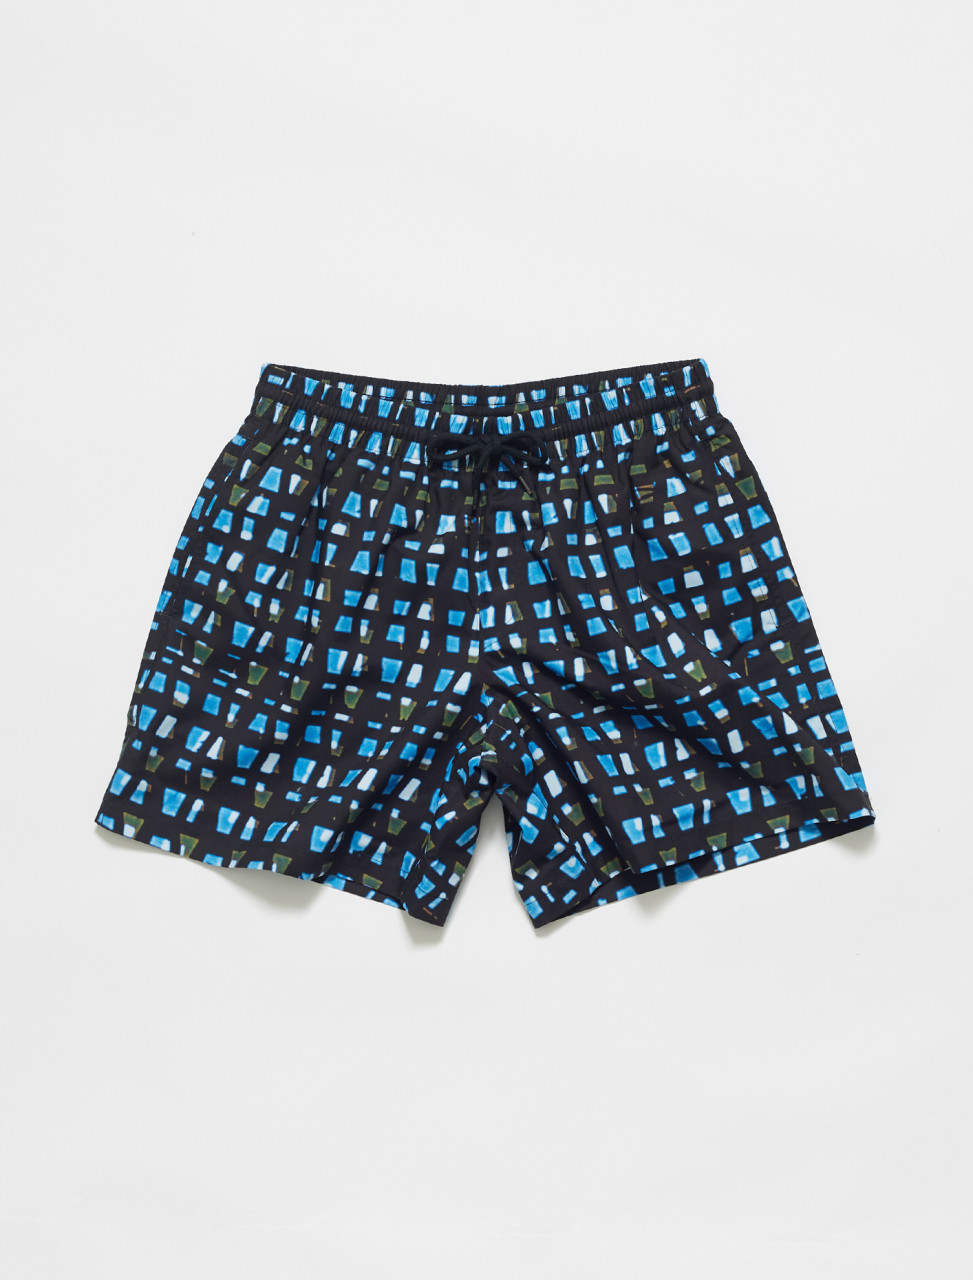 211-20938-2236-504 DRIES VAN NOTEN PHIBBS LEN LYE PIXEL PRINT SWIM SHORTS IN BLUE